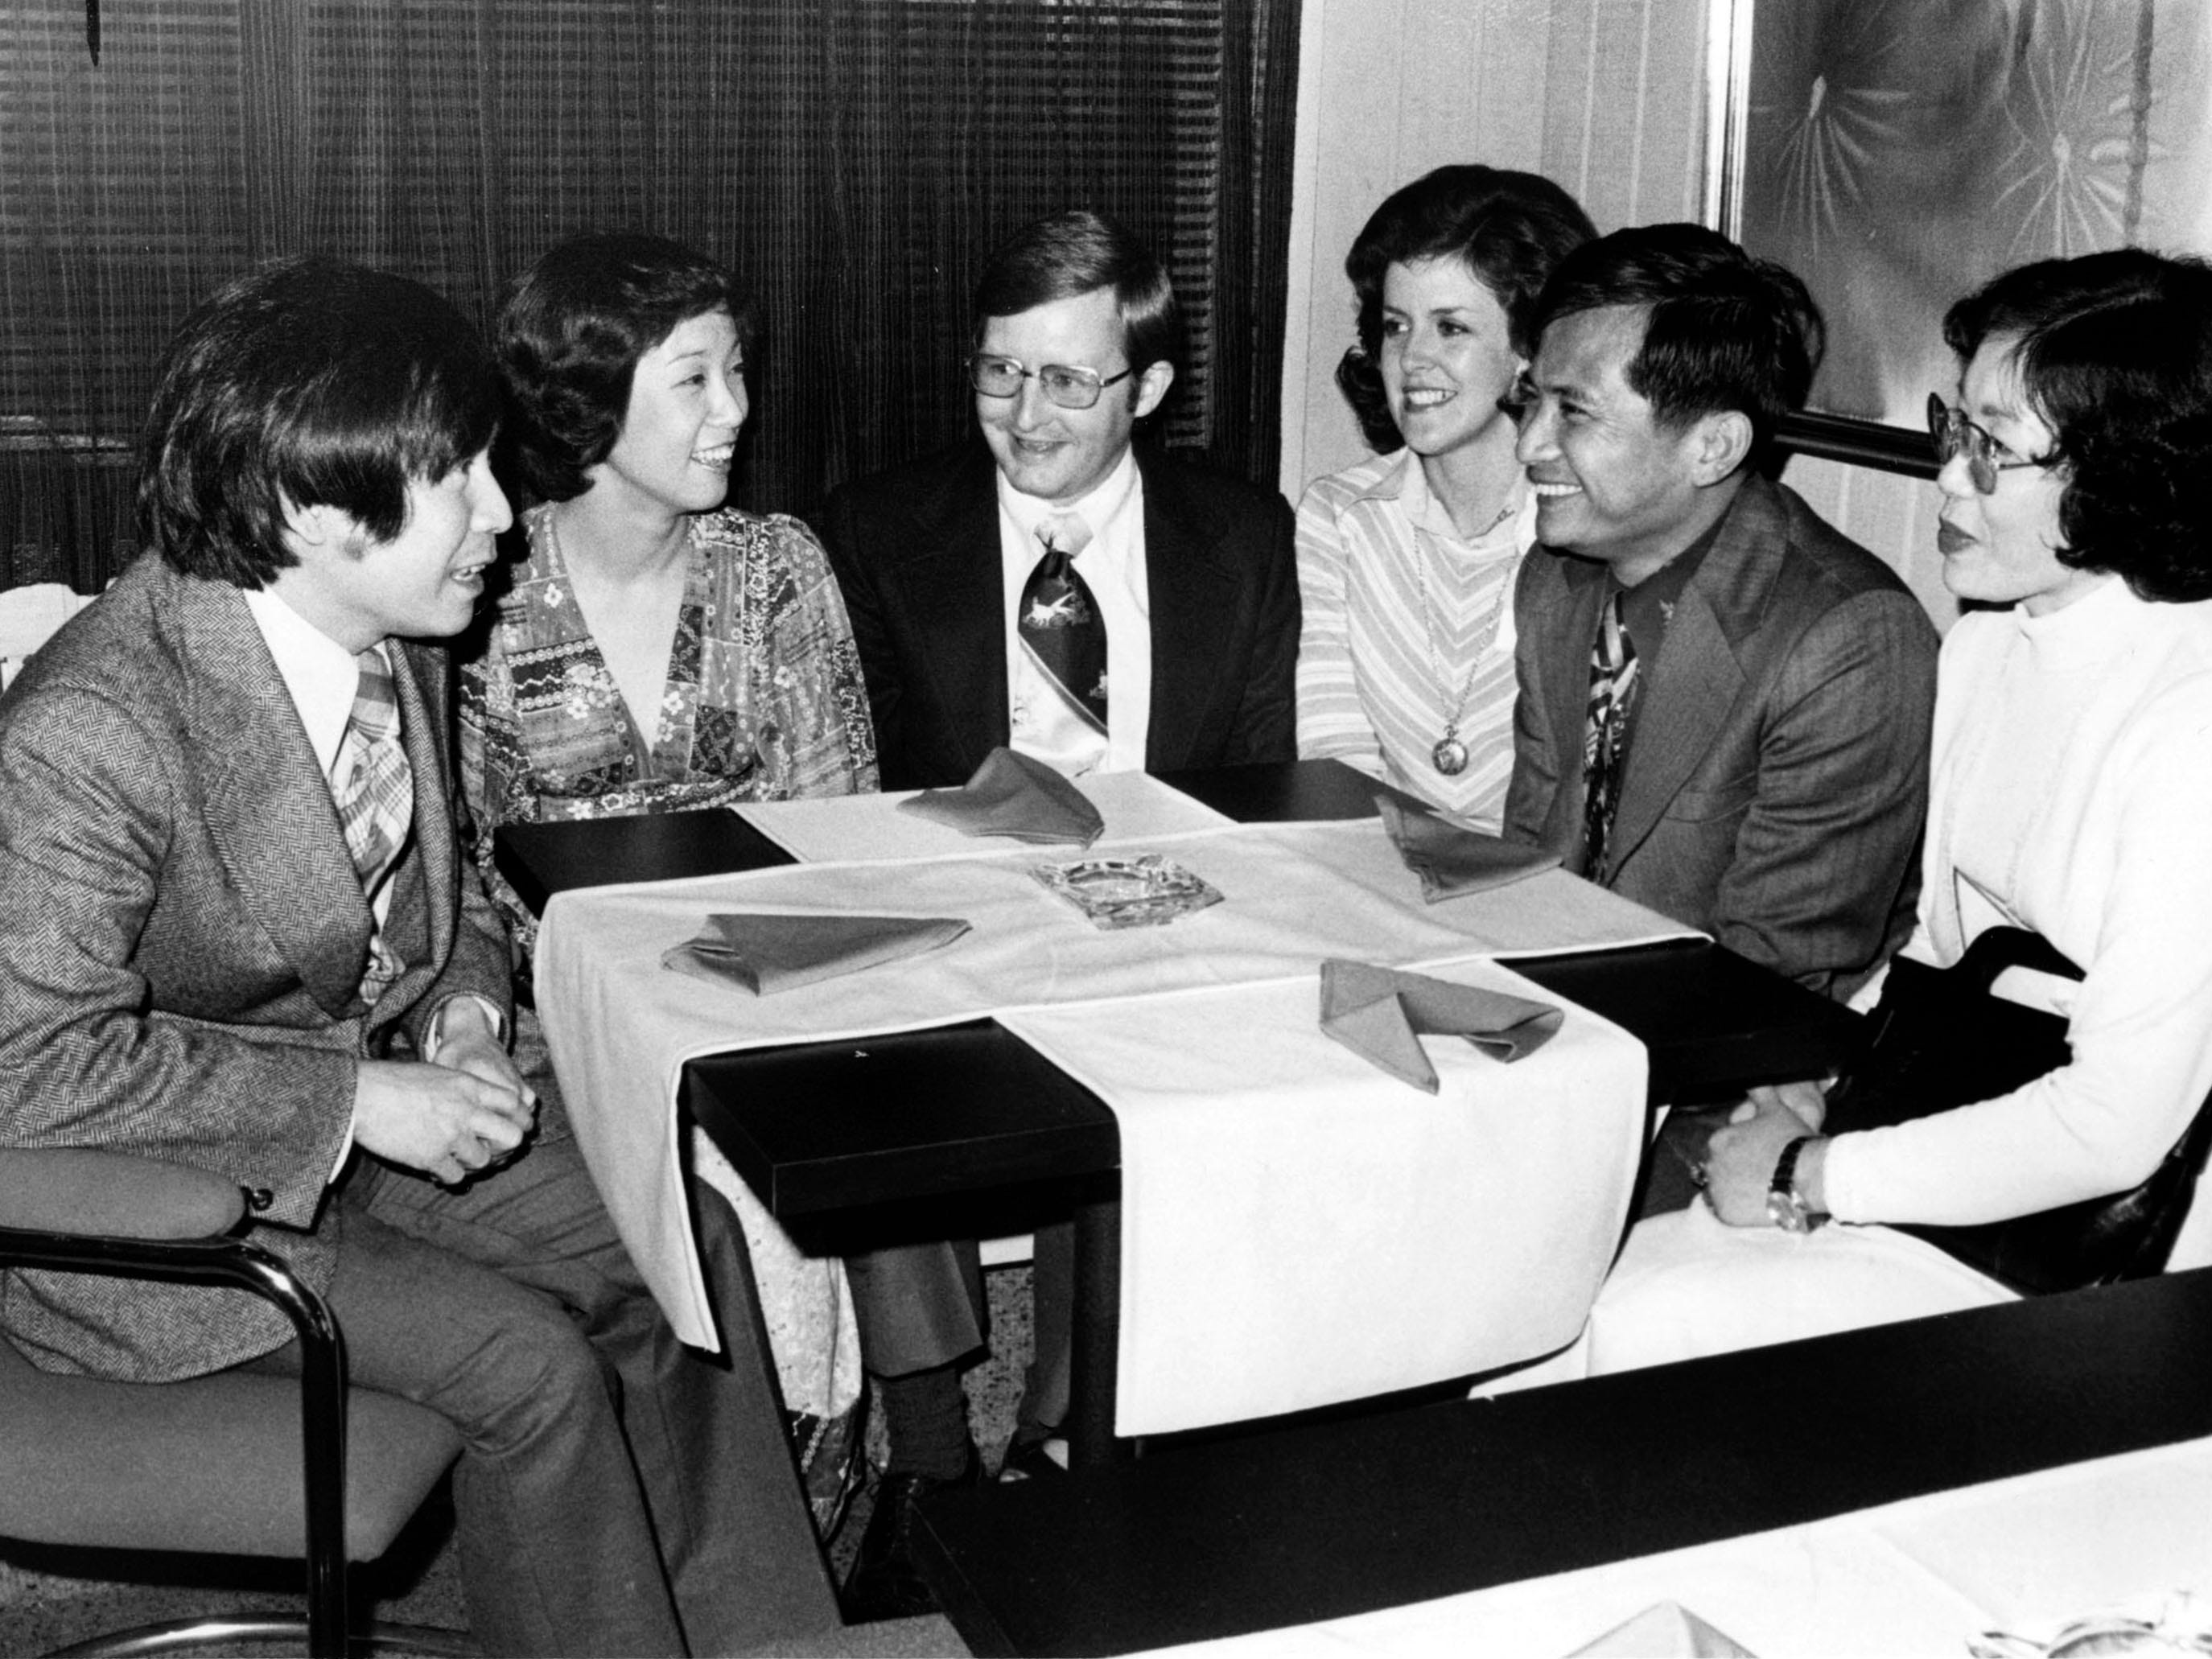 From left, Hao Siew Po, Janet Hao, owners of China Inn Restaurant, Richard Powell, Docia Powell, and Mr. and Mrs. Lin Ping Wen dining at China Inn Restaurant in 1976.